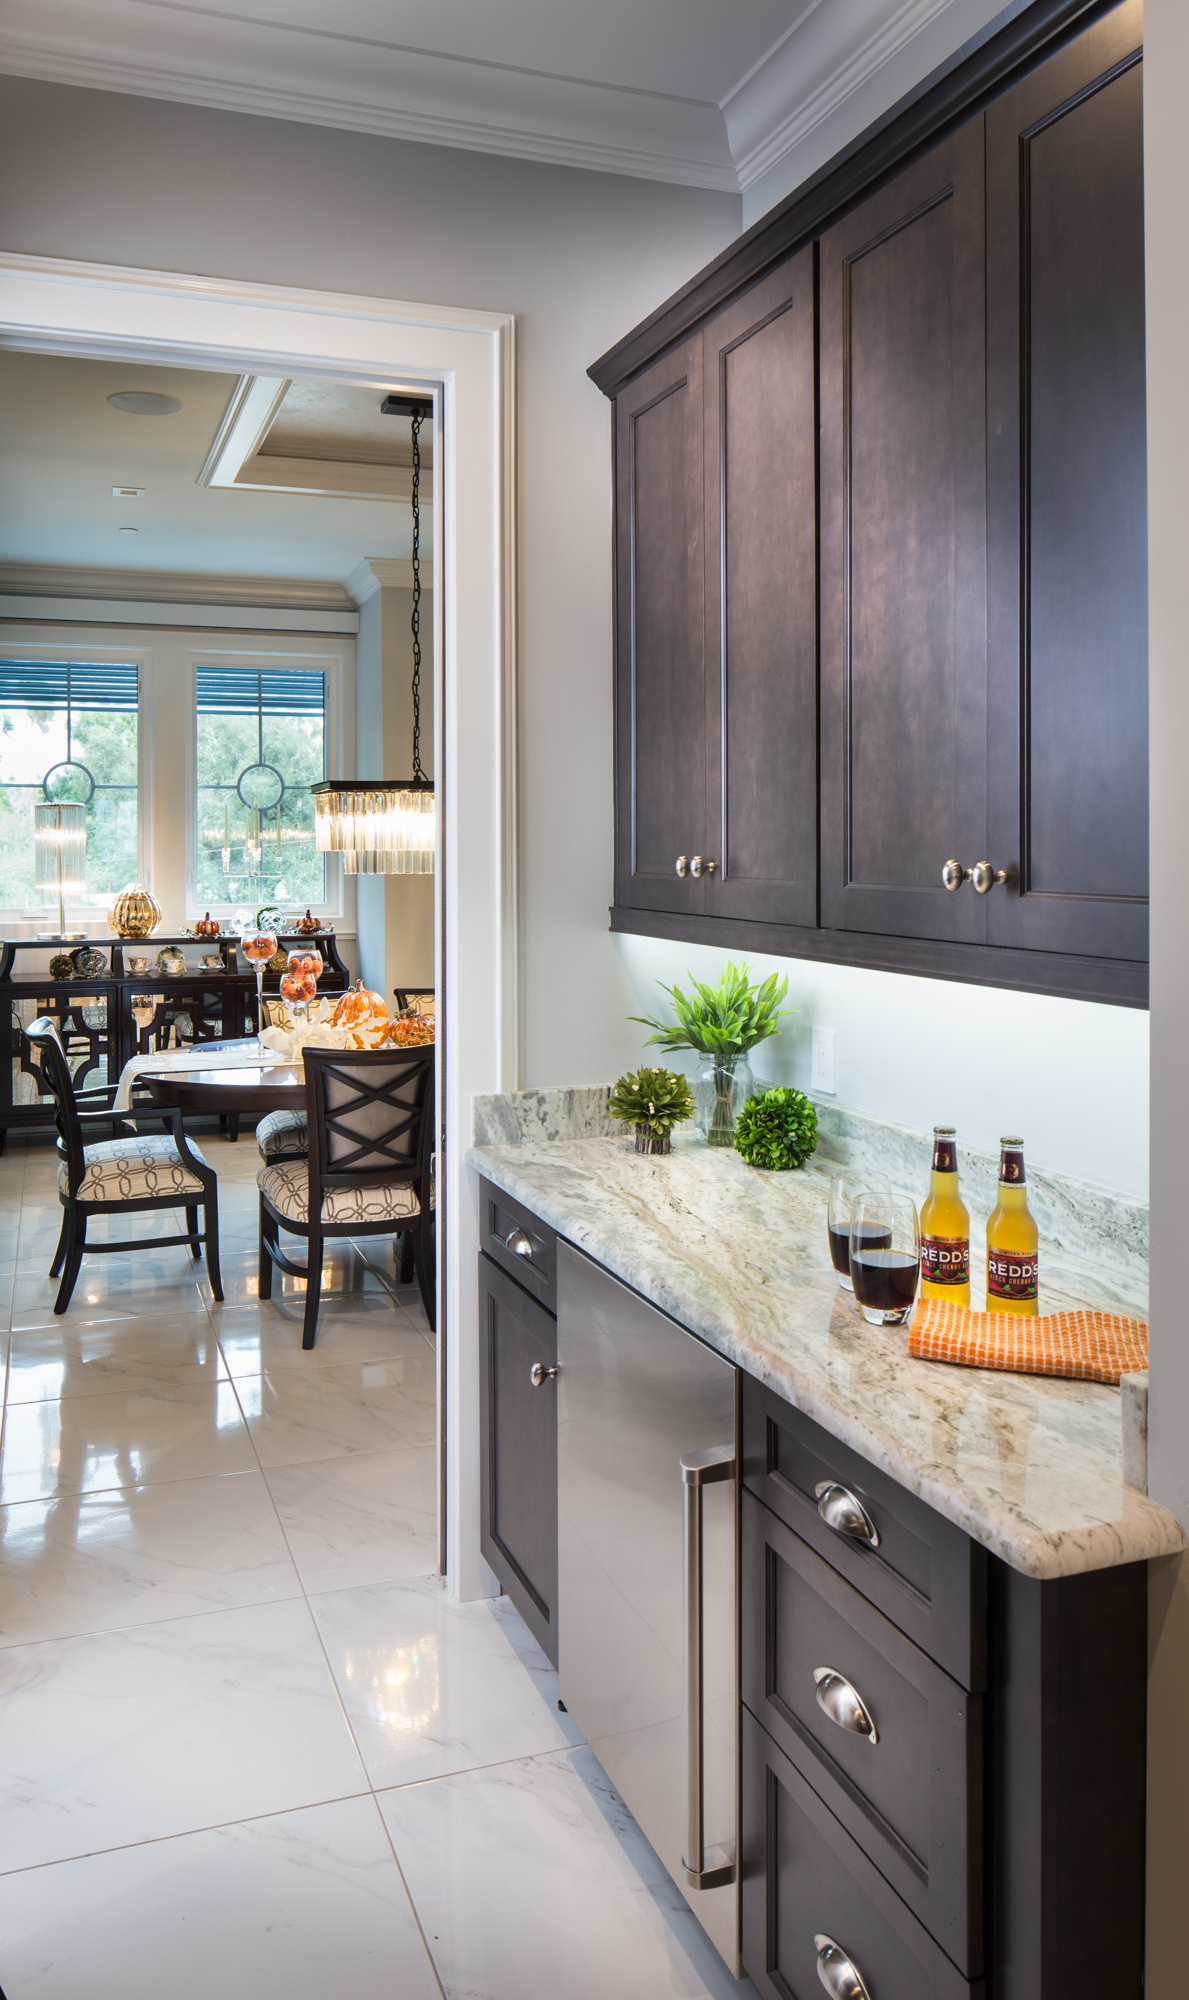 View this new home on the Gulf Coast of Florida with Showplace Cabinetry throughout.